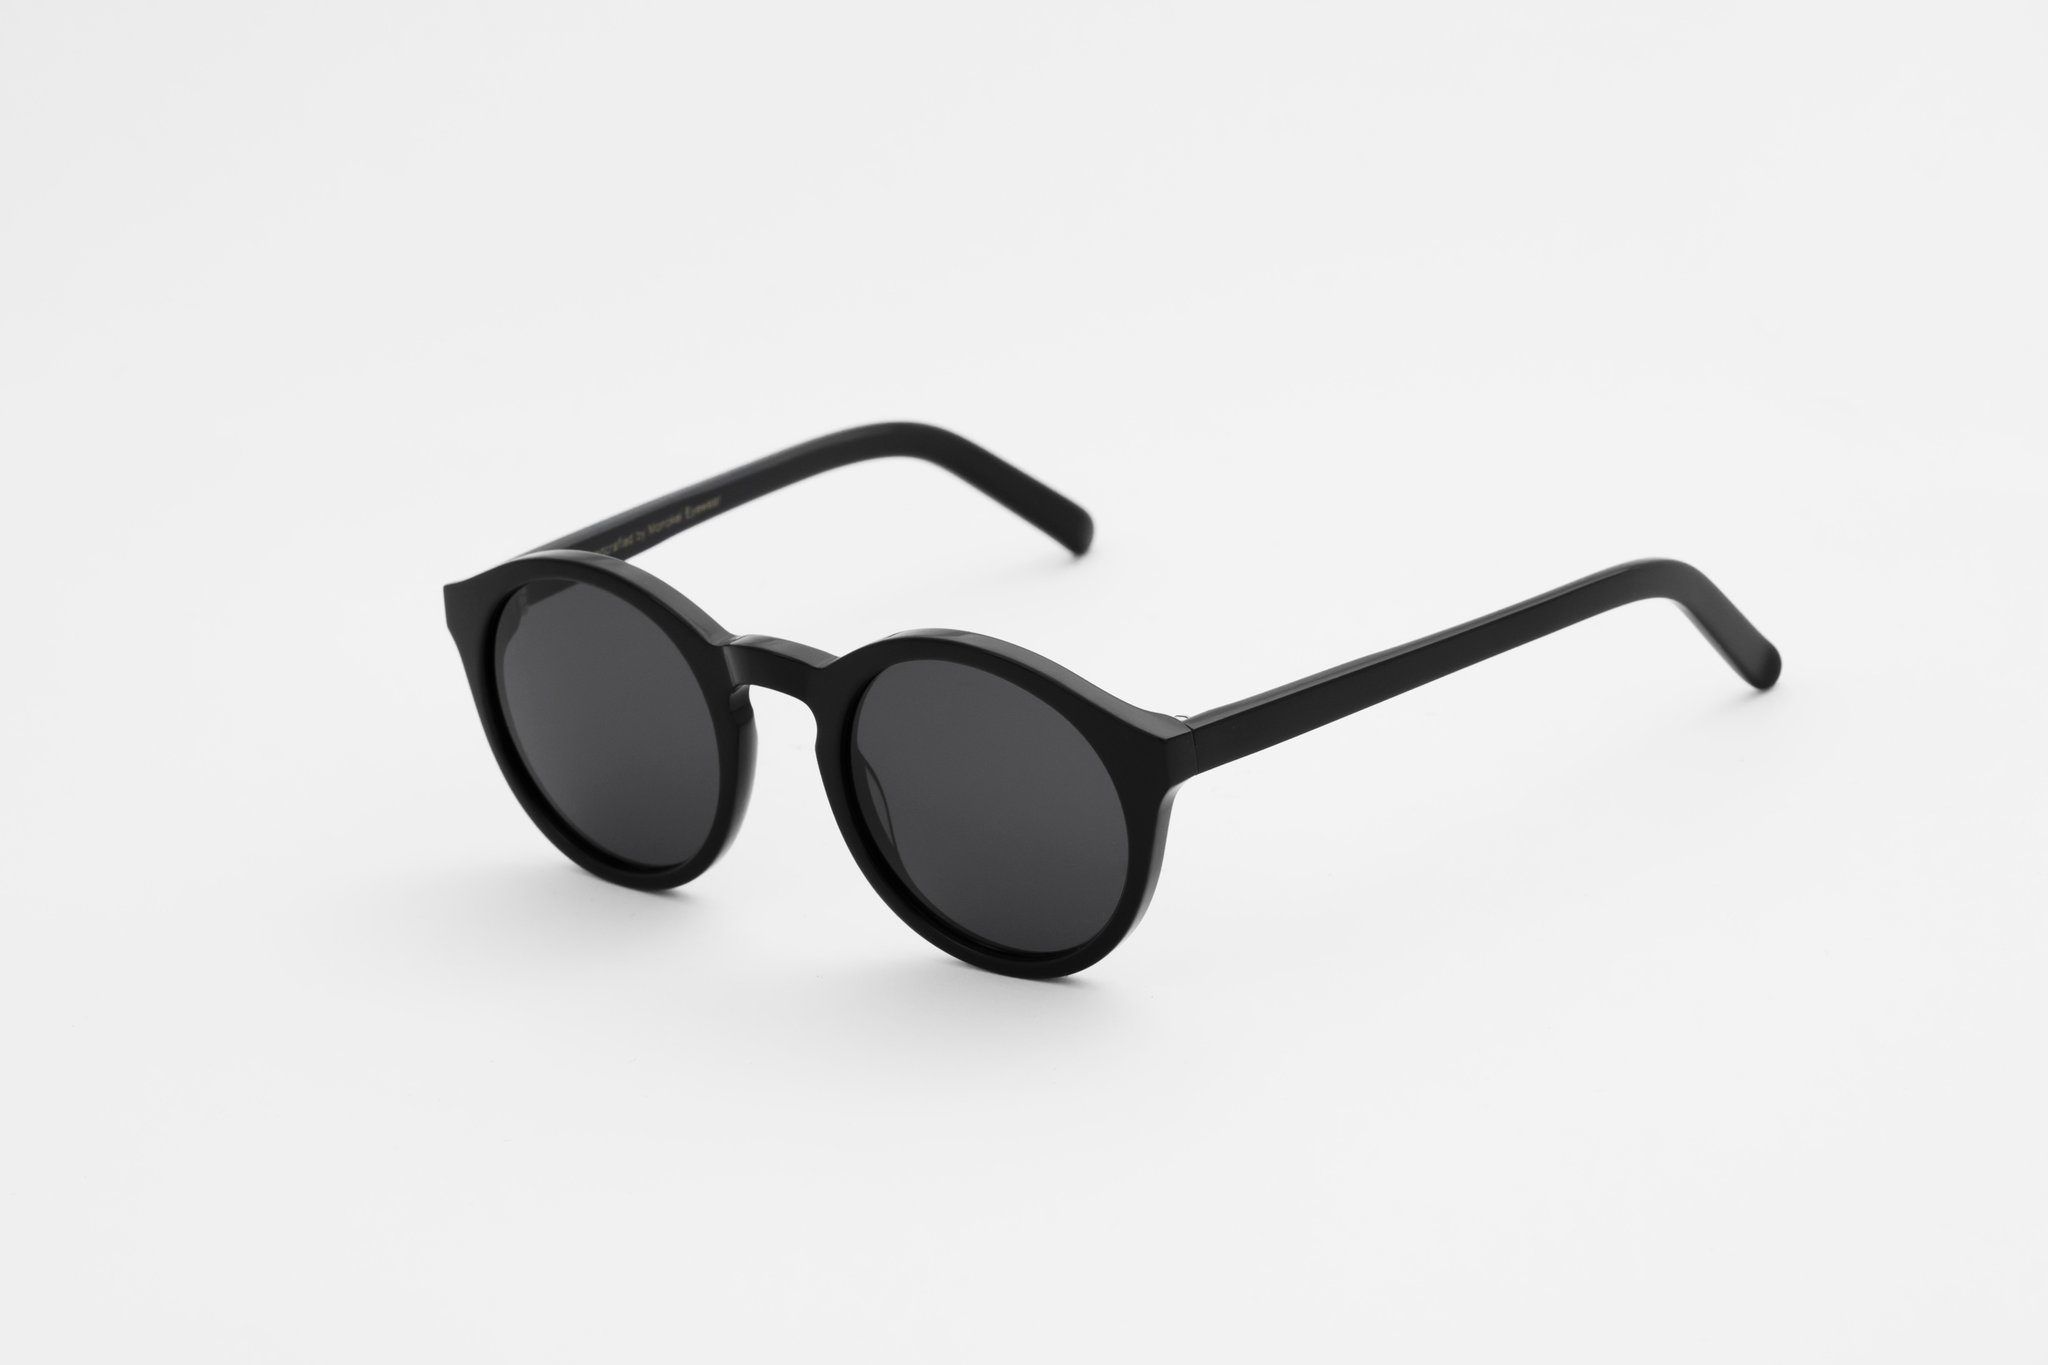 Barstow Black Grey Solid Lens Sunglasses-2